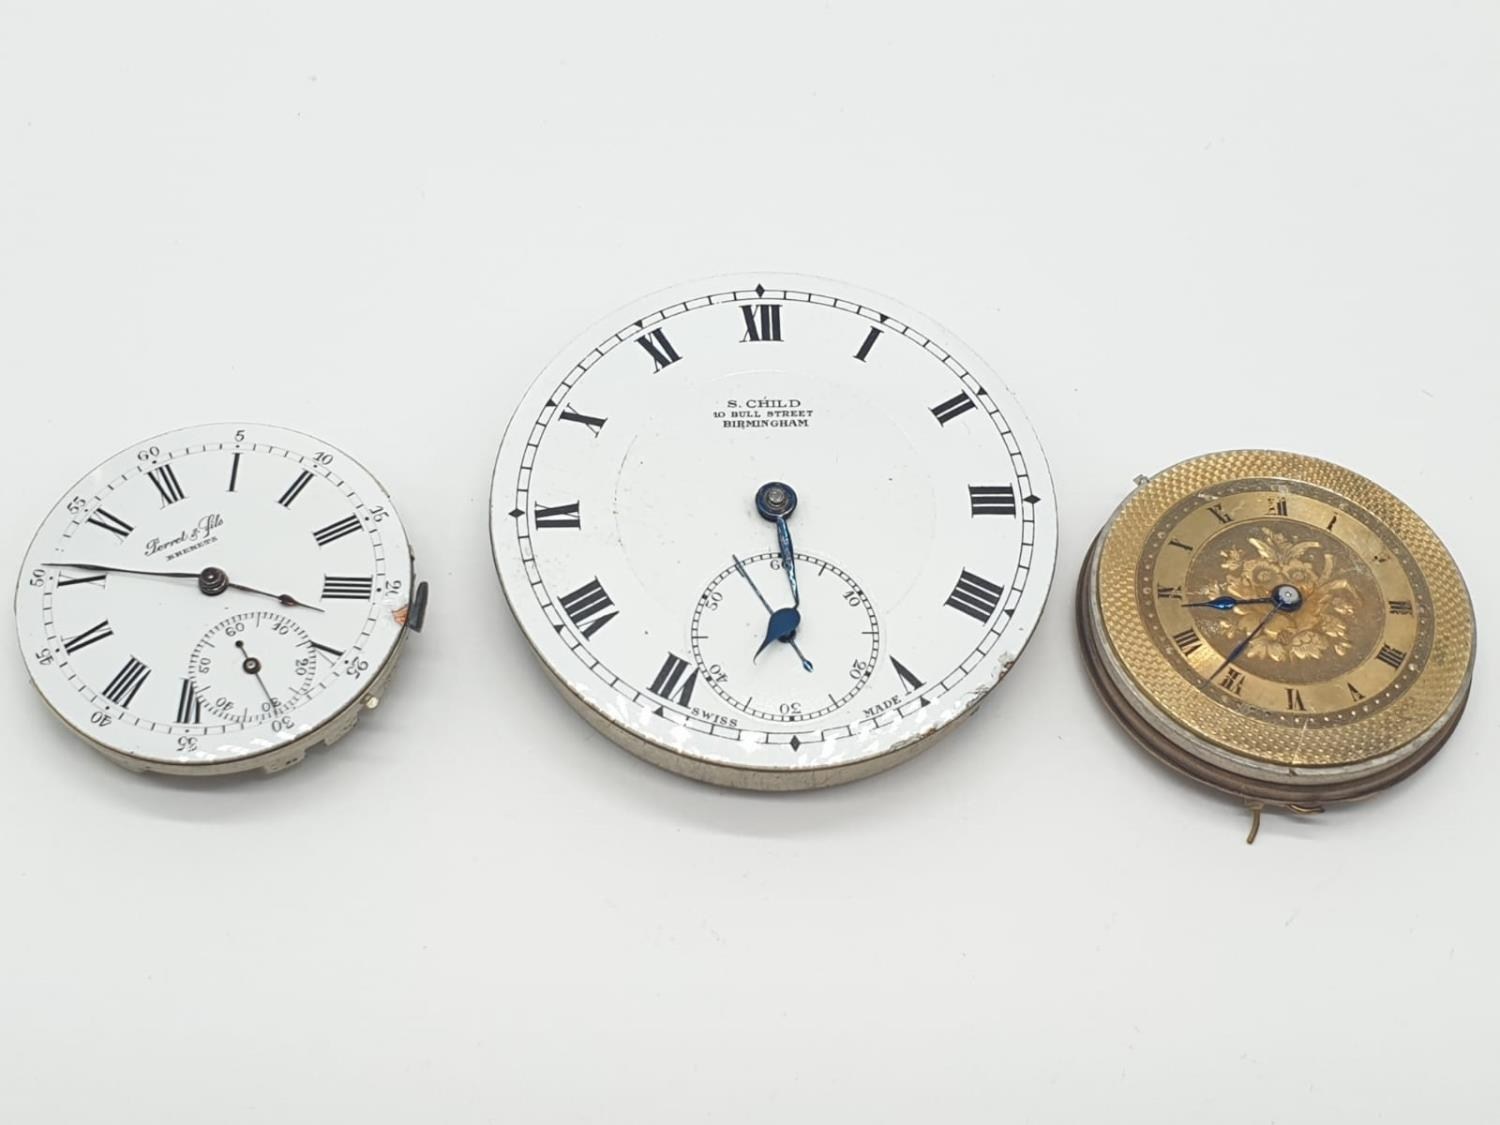 3 x Pocket Watch Movements. 3.0 , 3.5 and 4.5 cm.